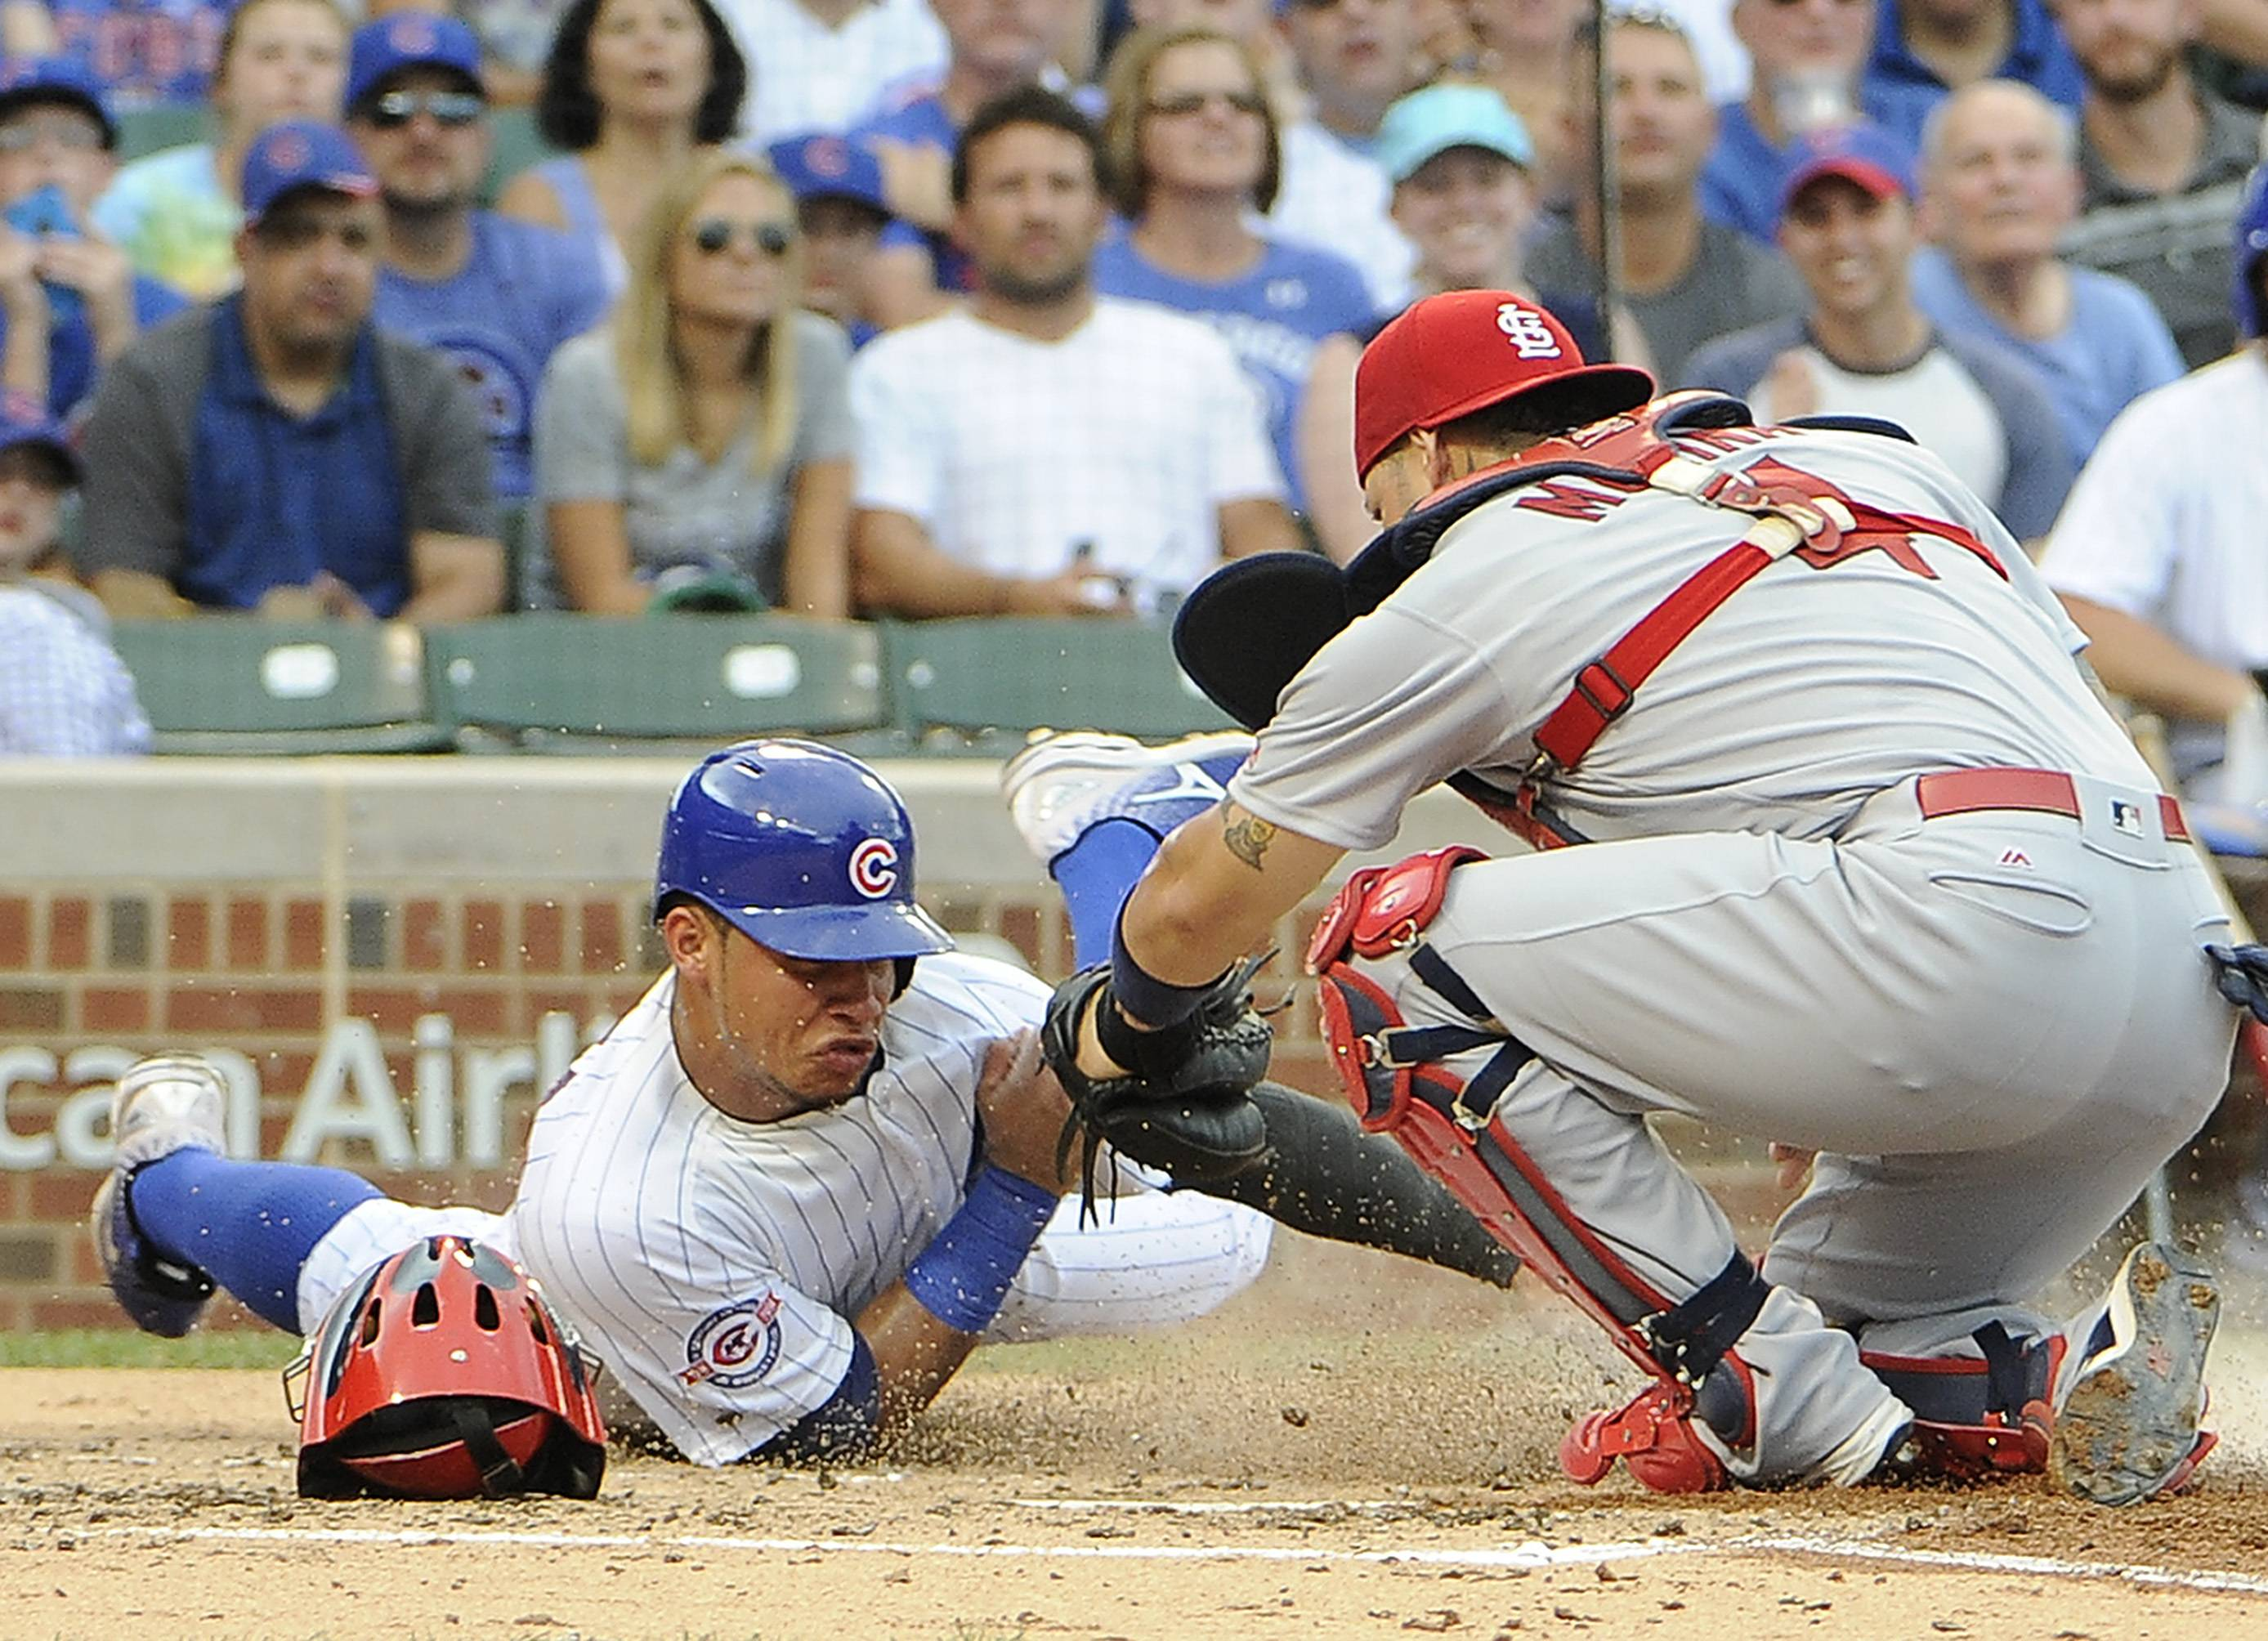 St. Louis Cardinals catcher Yadier Molina, right, tags out Willson Contreras of the Cubs in a game at Wrigley last August. The Cardinals missed the playoffs last season but many expect they could earn a wild-card bid this year.